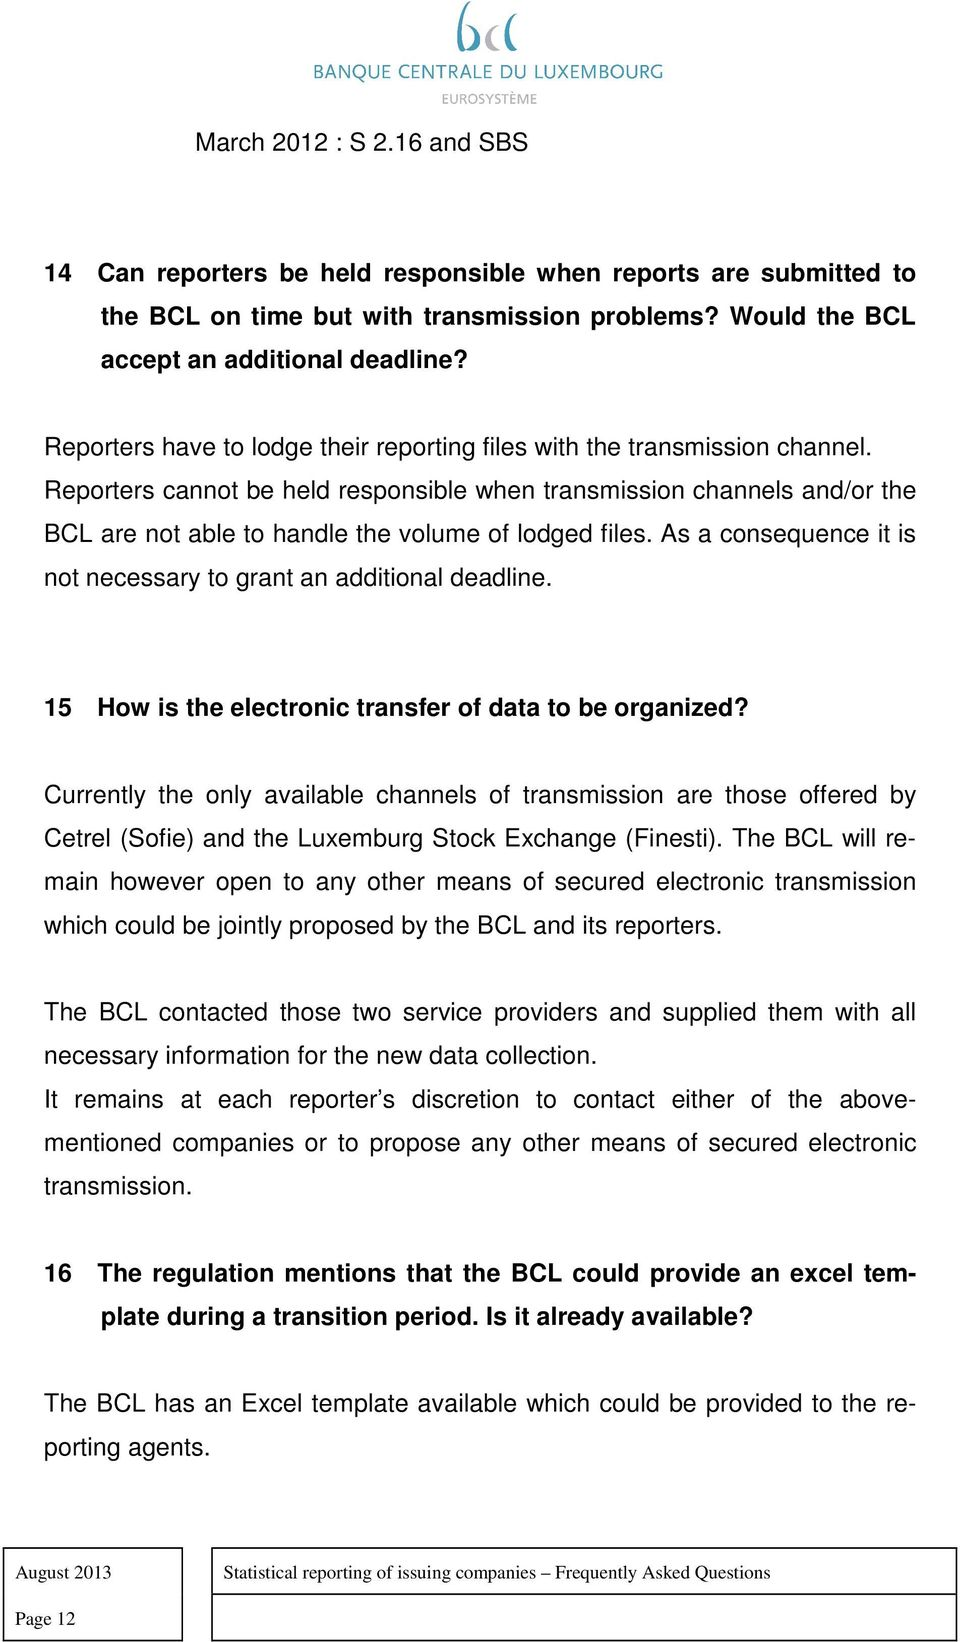 Reporters cannot be held responsible when transmission channels and/or the BCL are not able to handle the volume of lodged files. As a consequence it is not necessary to grant an additional deadline.